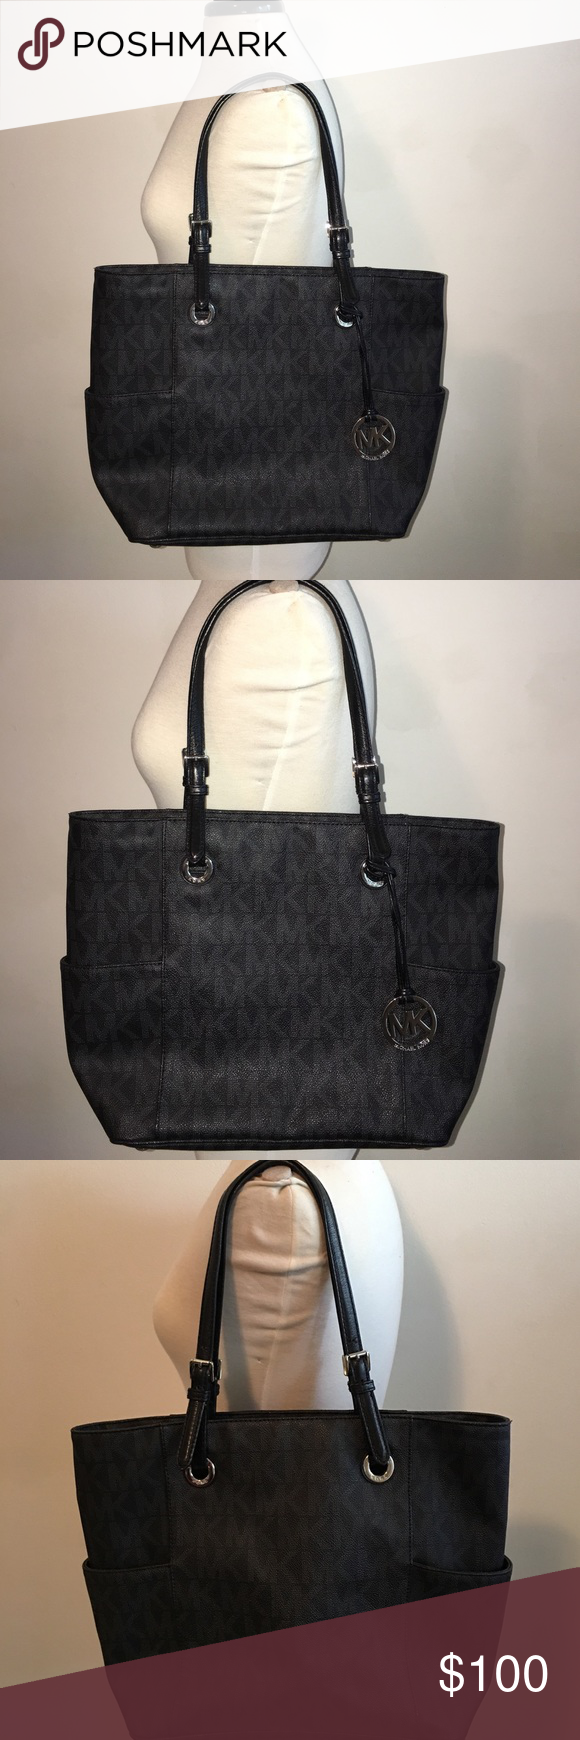 361a1a85fdd4b1 Real Michael Kors Black Monogram Tote bag. Real Michael Kors Black Monogram Tote  bag,